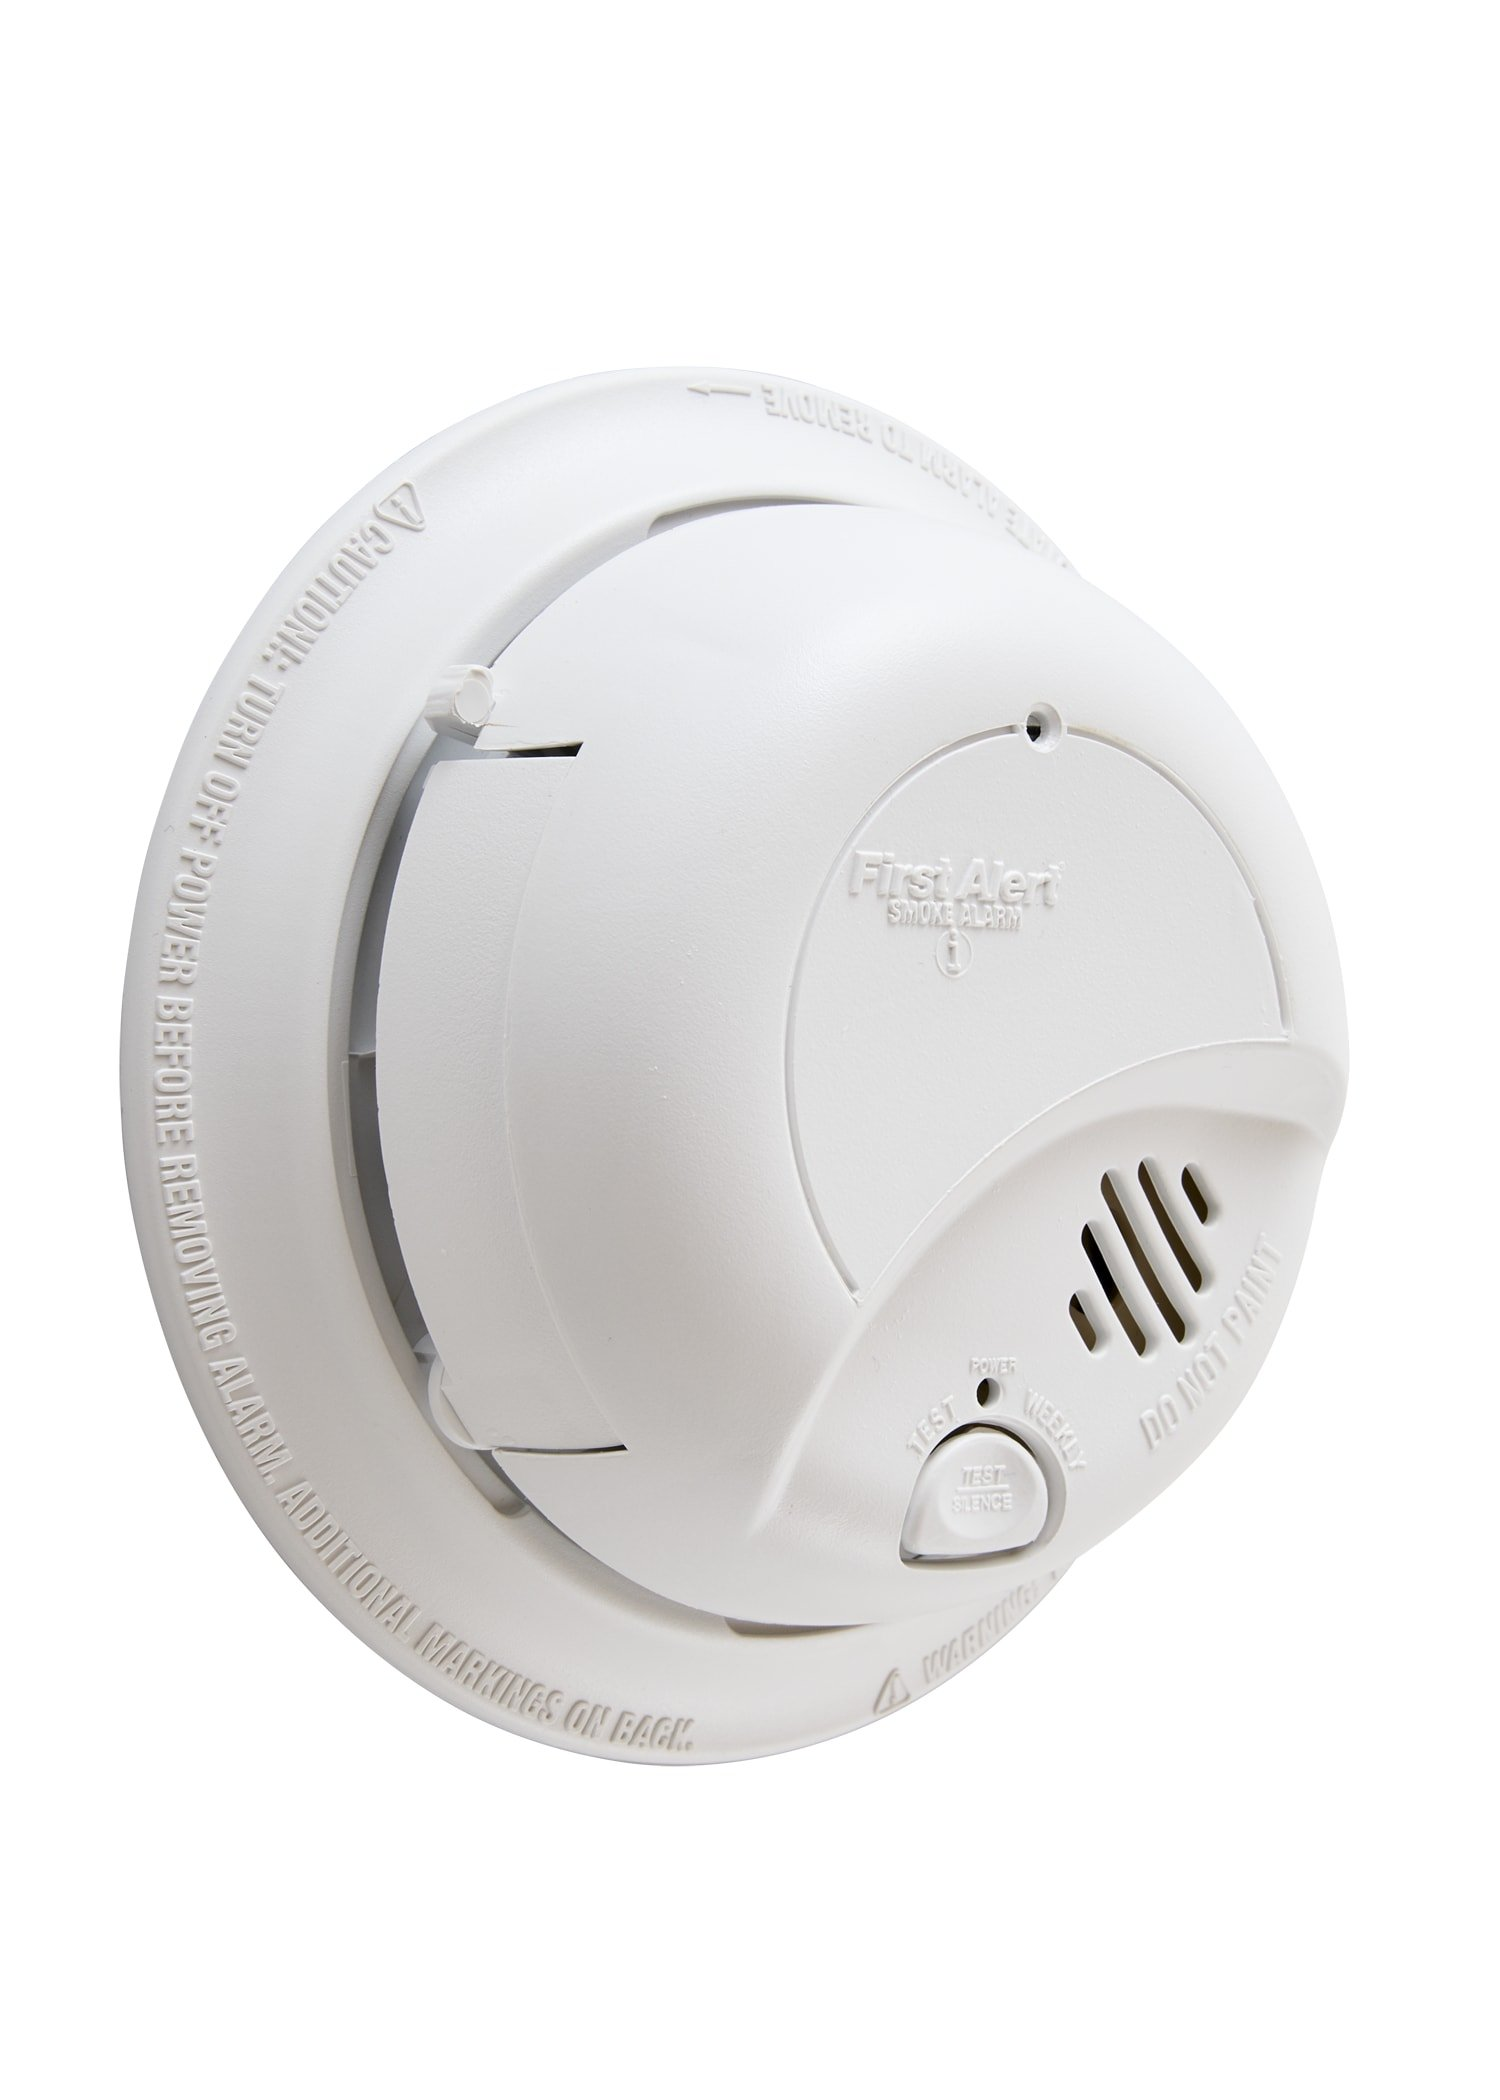 First Alert Smoke Detector Alarm | Hardwired with Backup Battery, BRK9120b6CP by First Alert